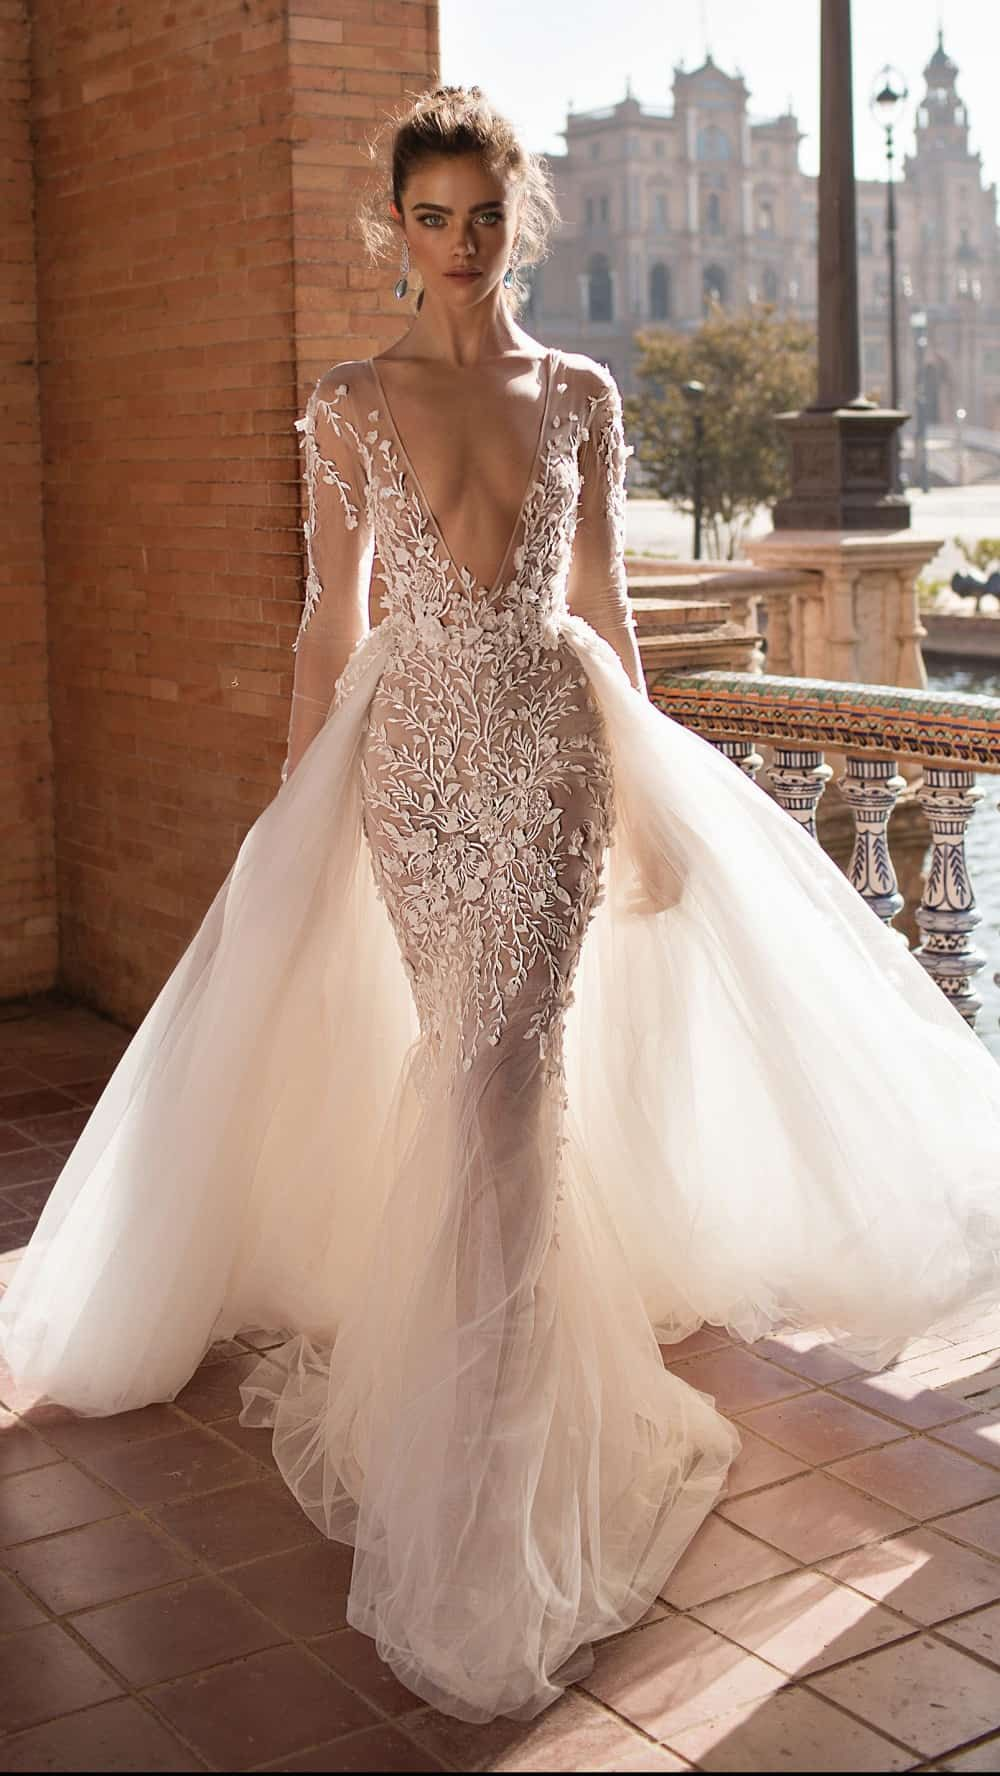 7a7f1505a6c 2018 Wedding dresses by Berta Bridal with a plunging v-neck and  embellishment.  weddingdresses